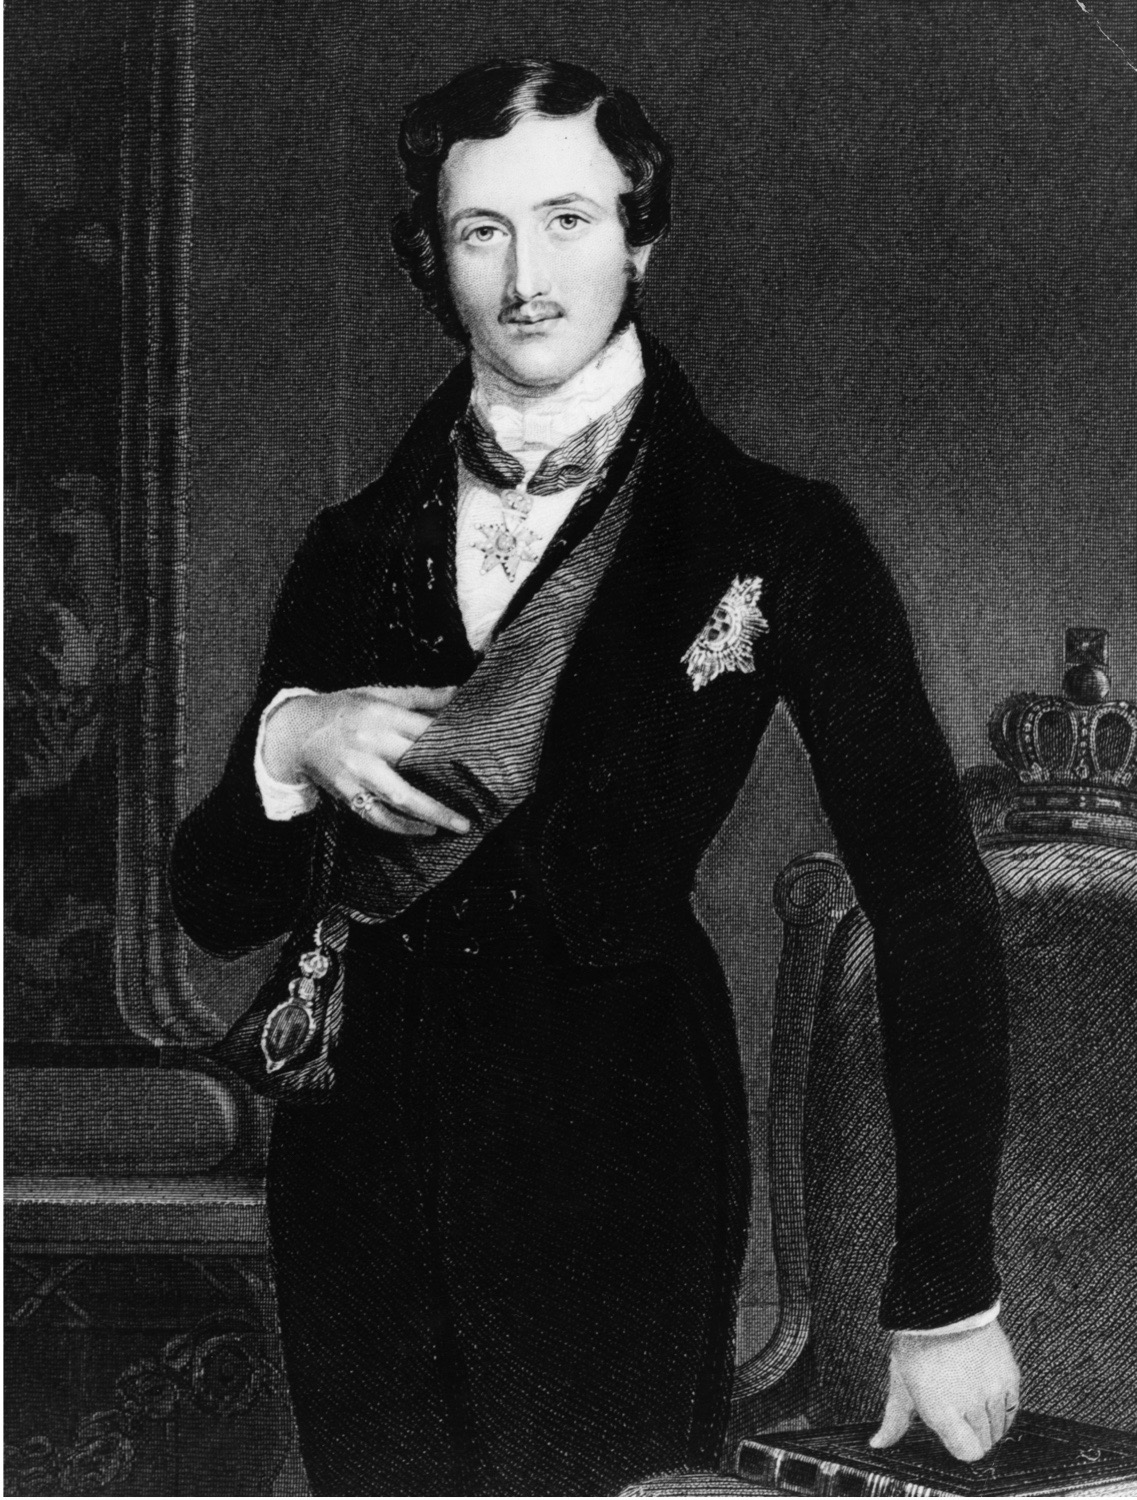 circa 1840: His Royal Highness Prince Albert Francis Charles Augustus Emmanuel of Saxe-Coburg-Gotha (1819 - 1861), Consort to Queen Victoria. Original Artwork: Engraved from a portrait by WC Ross (Photo by Hulton Archive/Getty Images)